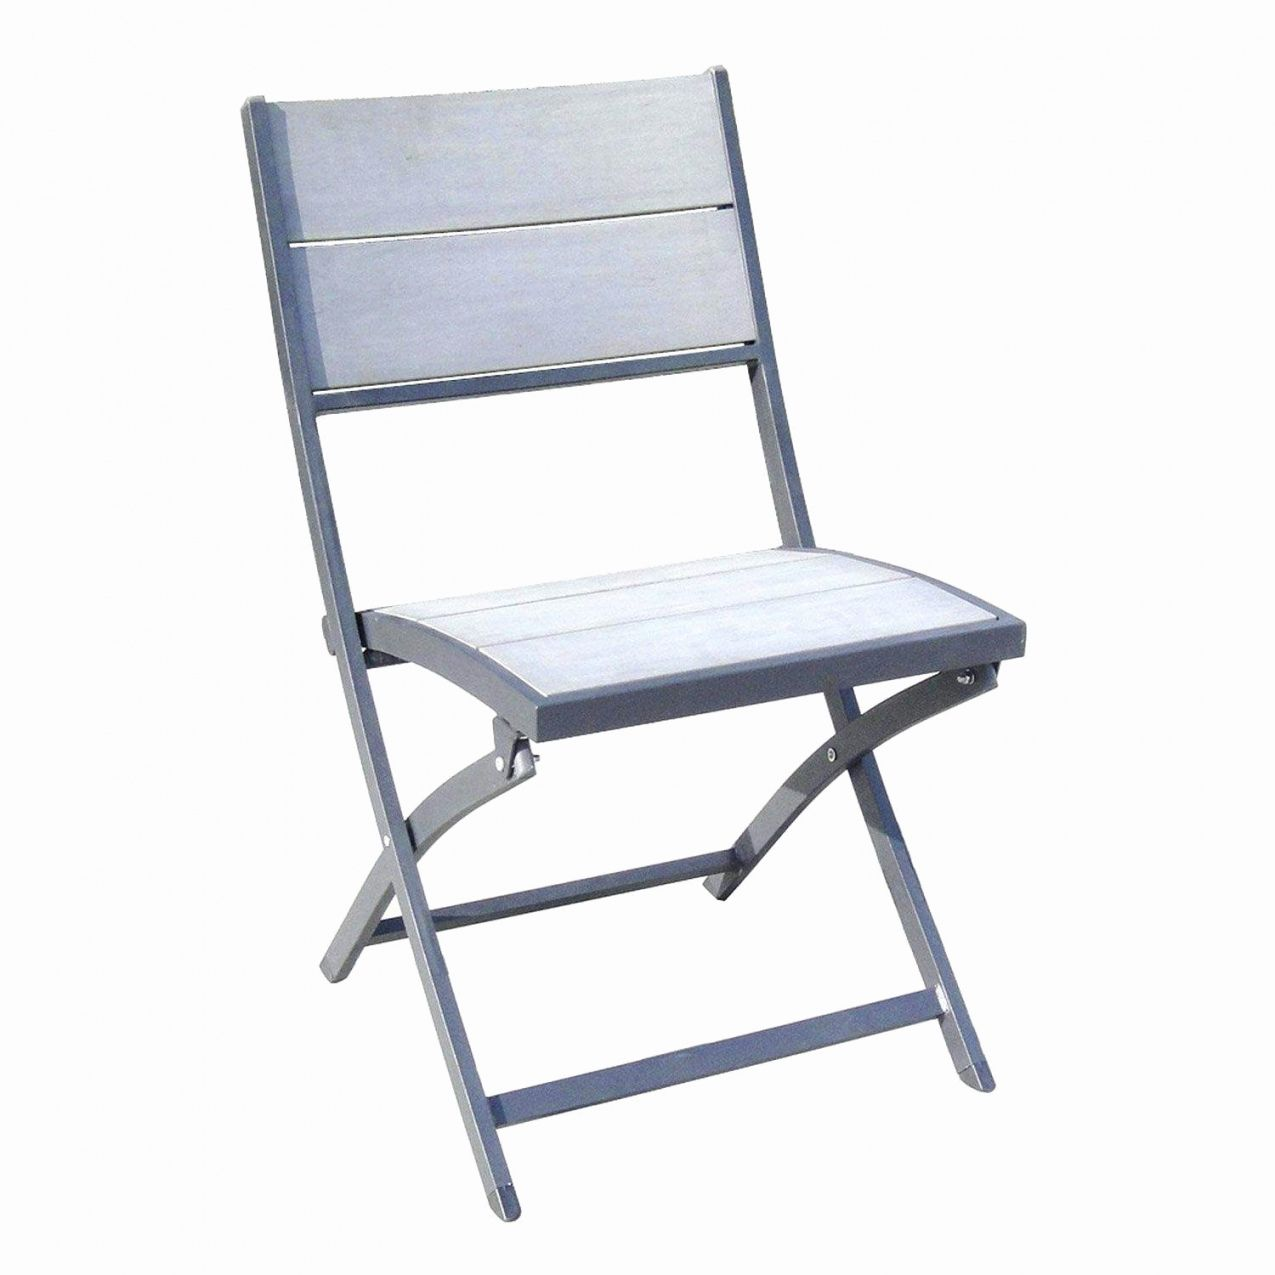 50 Fauteuil De Relaxation Lafuma 2020 Folding Chair Chair Home Decor